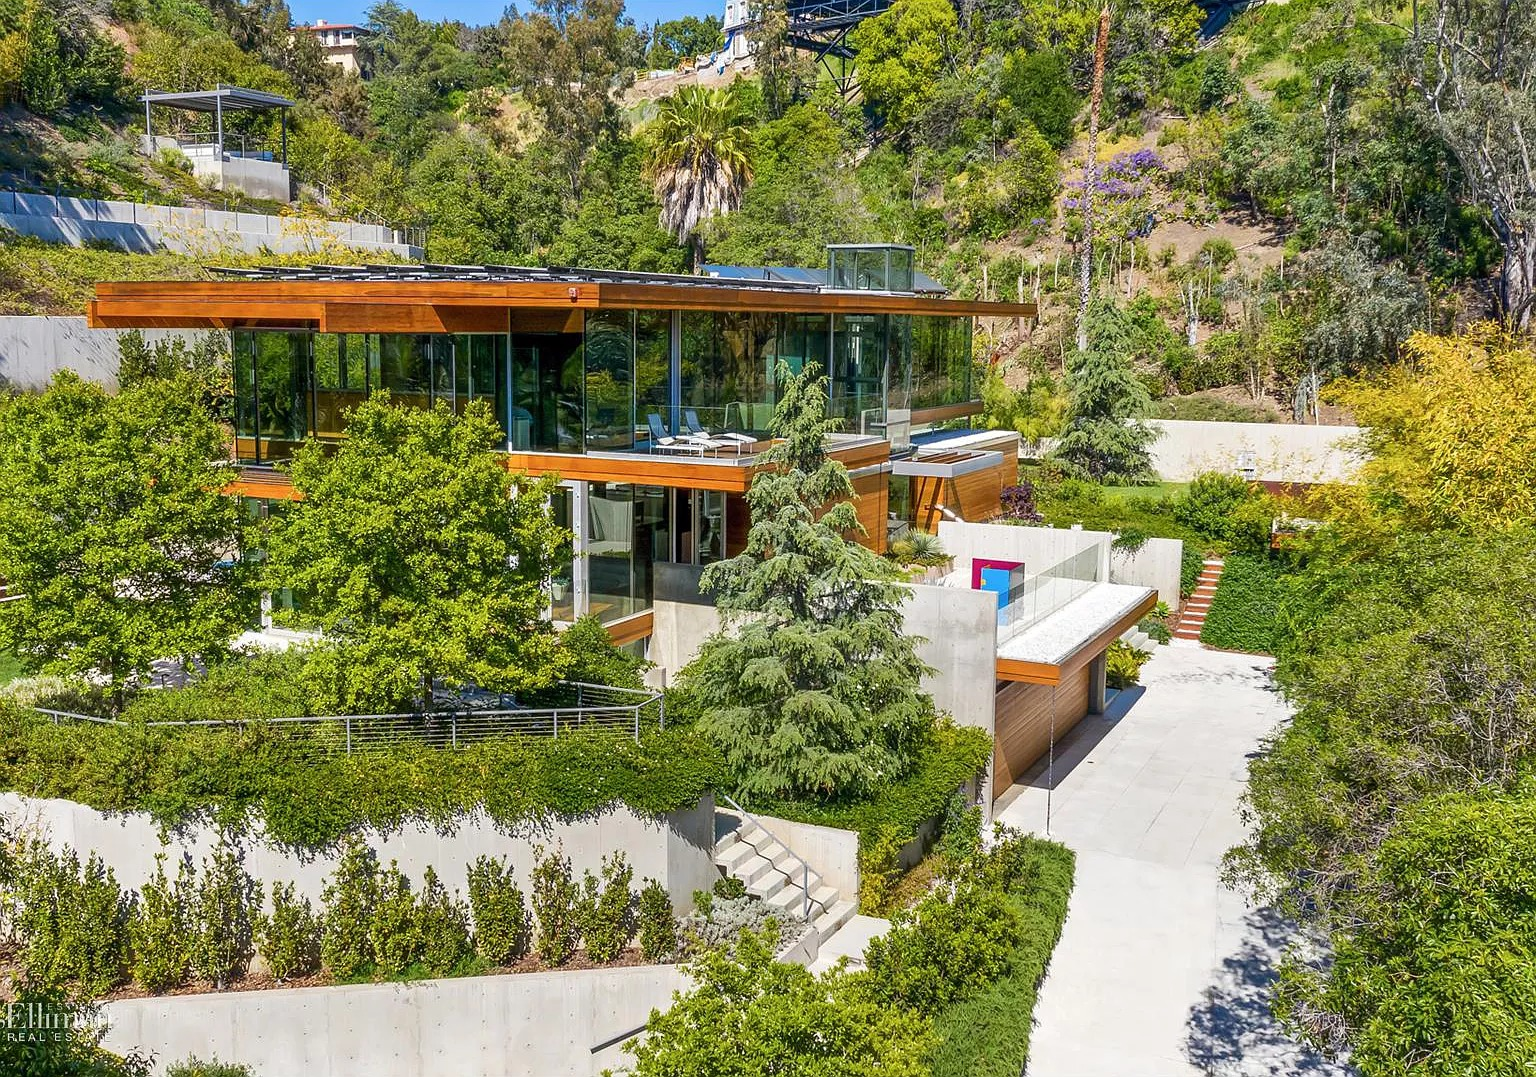 1160 San Ysidro Dr, Beverly Hills, CA 90210 - $19,950,000 home for sale, house images, photos and pics gallery